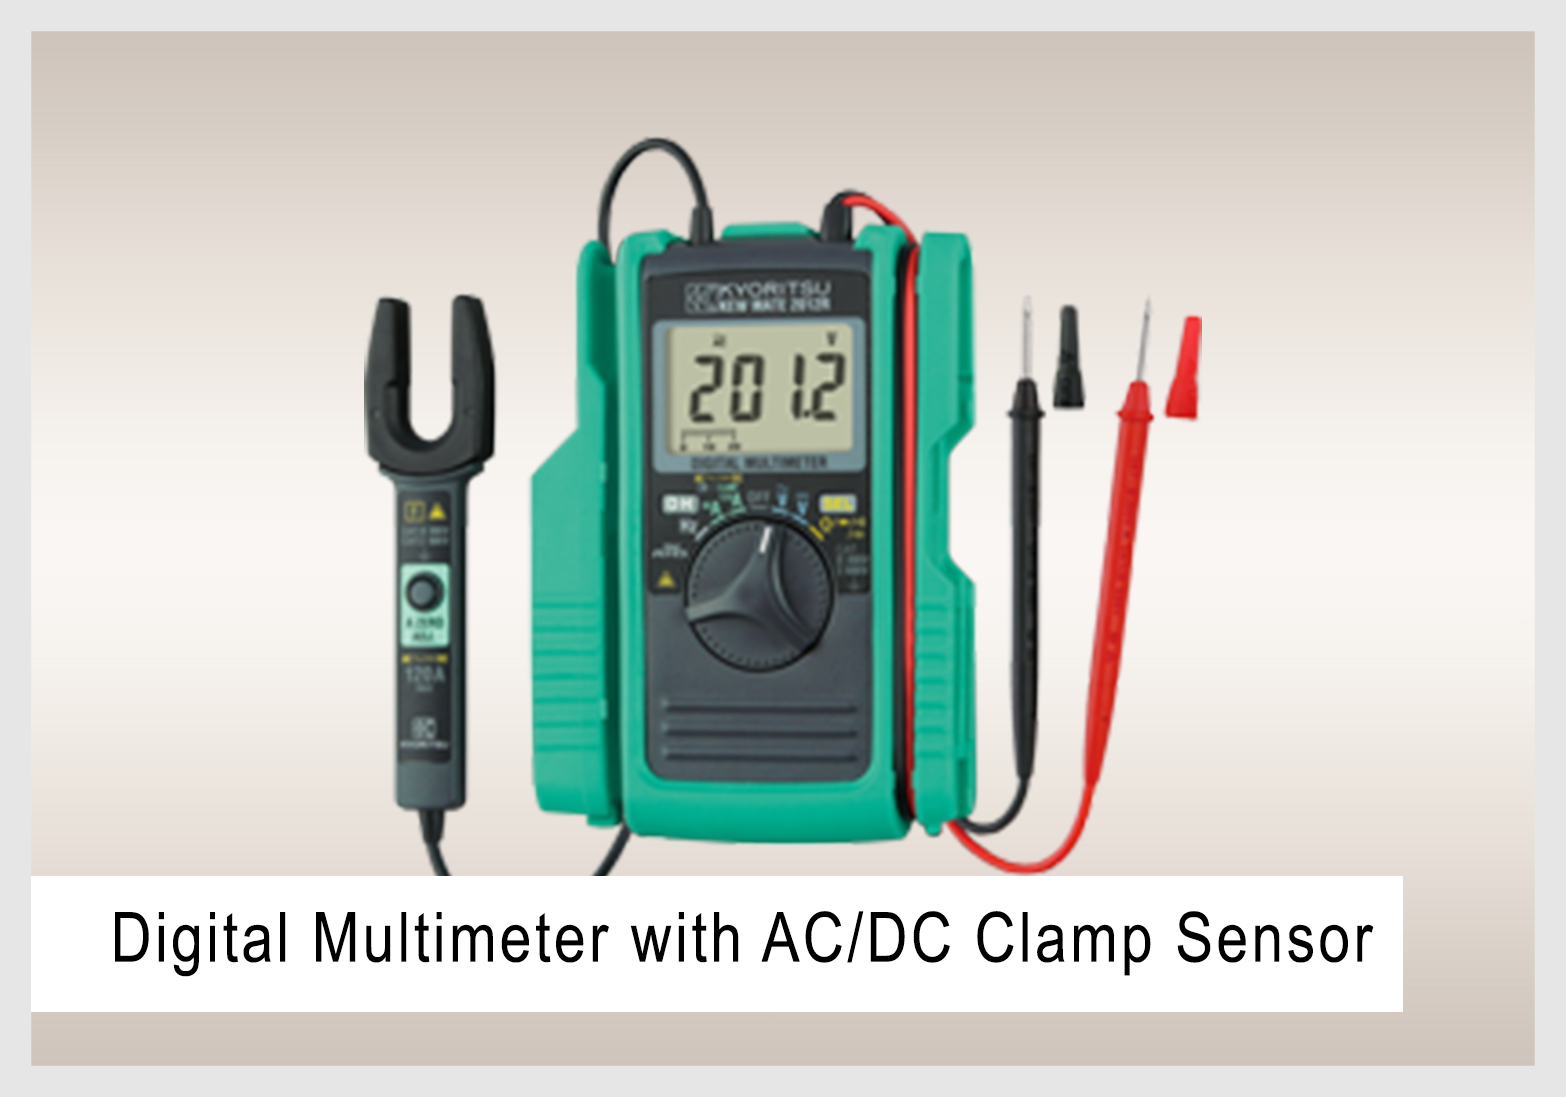 Digital Multimeter with AC/DC Clamp Sensor